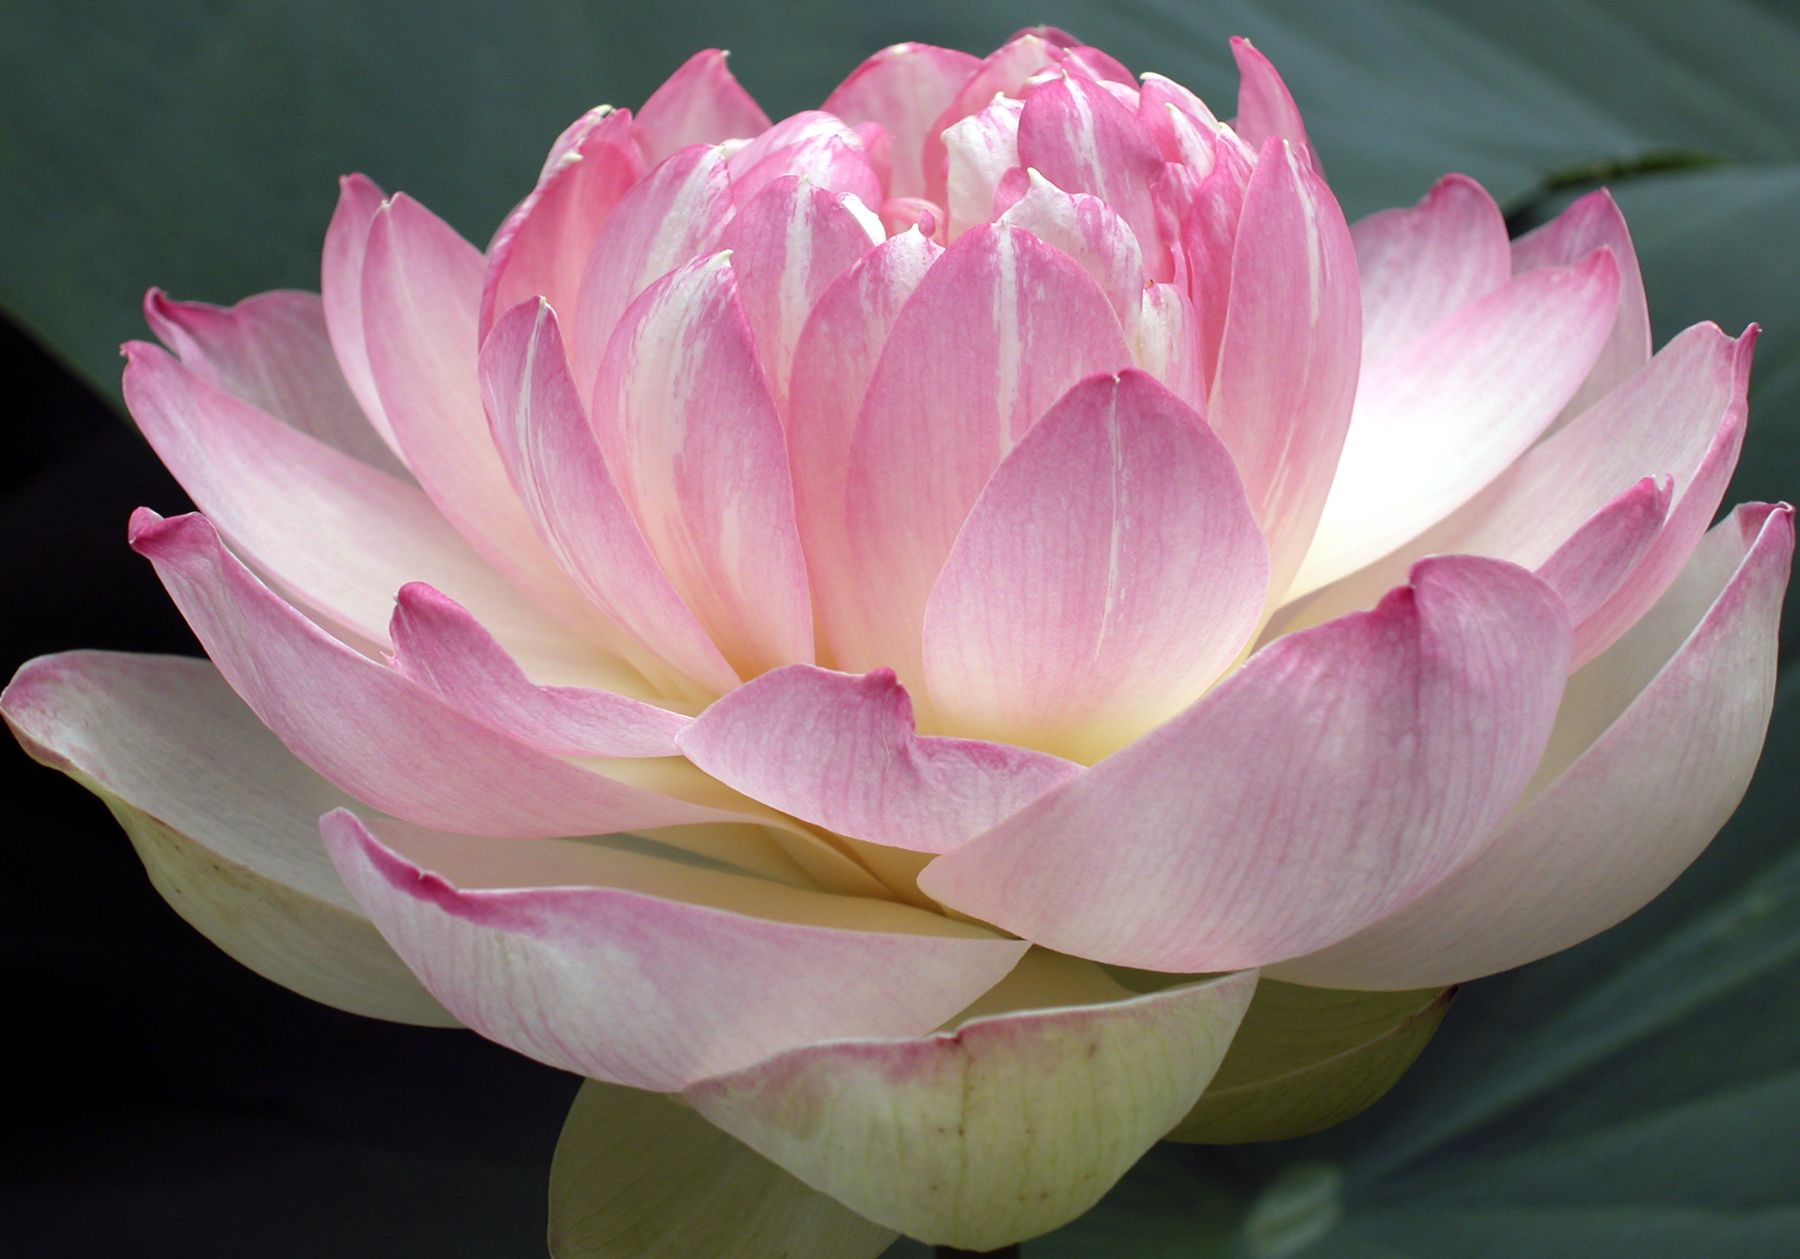 Pin by ellen van den ende on praktijk lotus pinterest explore the lotus lotus flowers and more izmirmasajfo